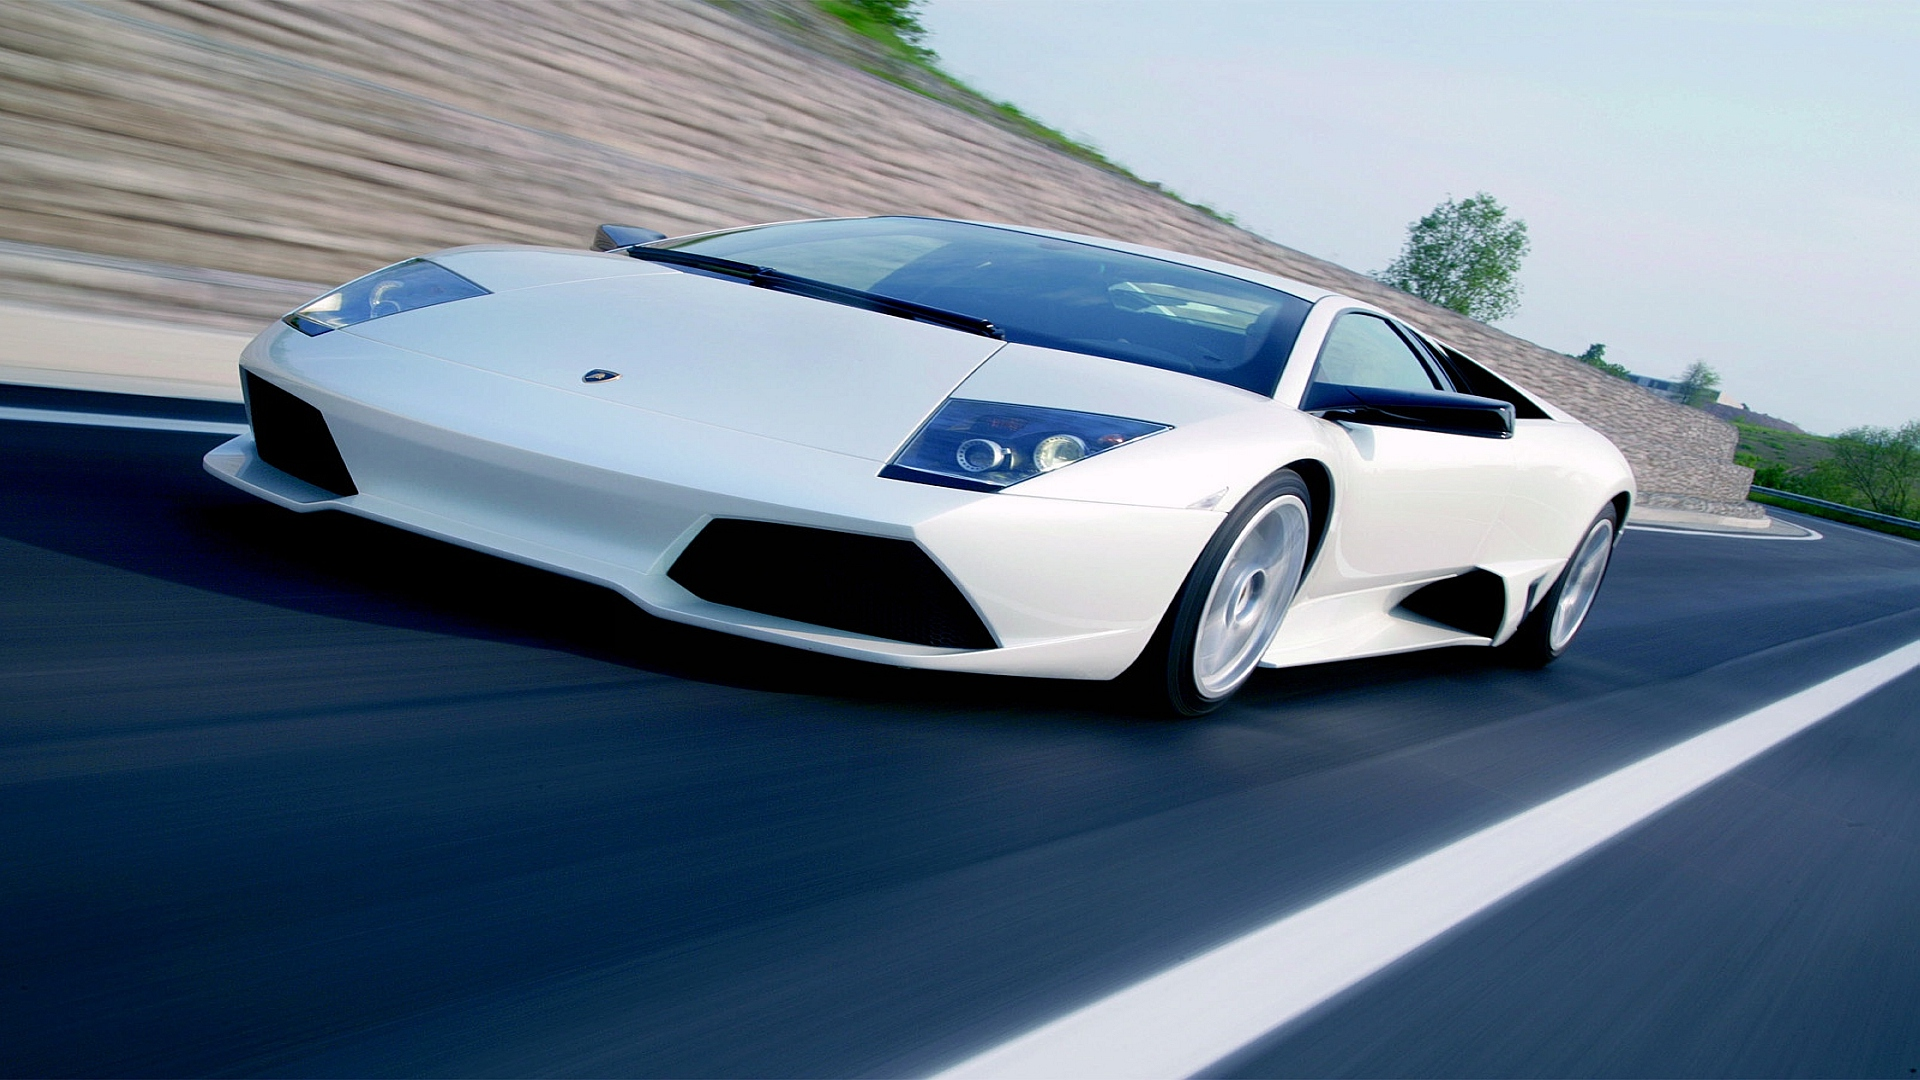 Lamborghini In Action Wallpapers